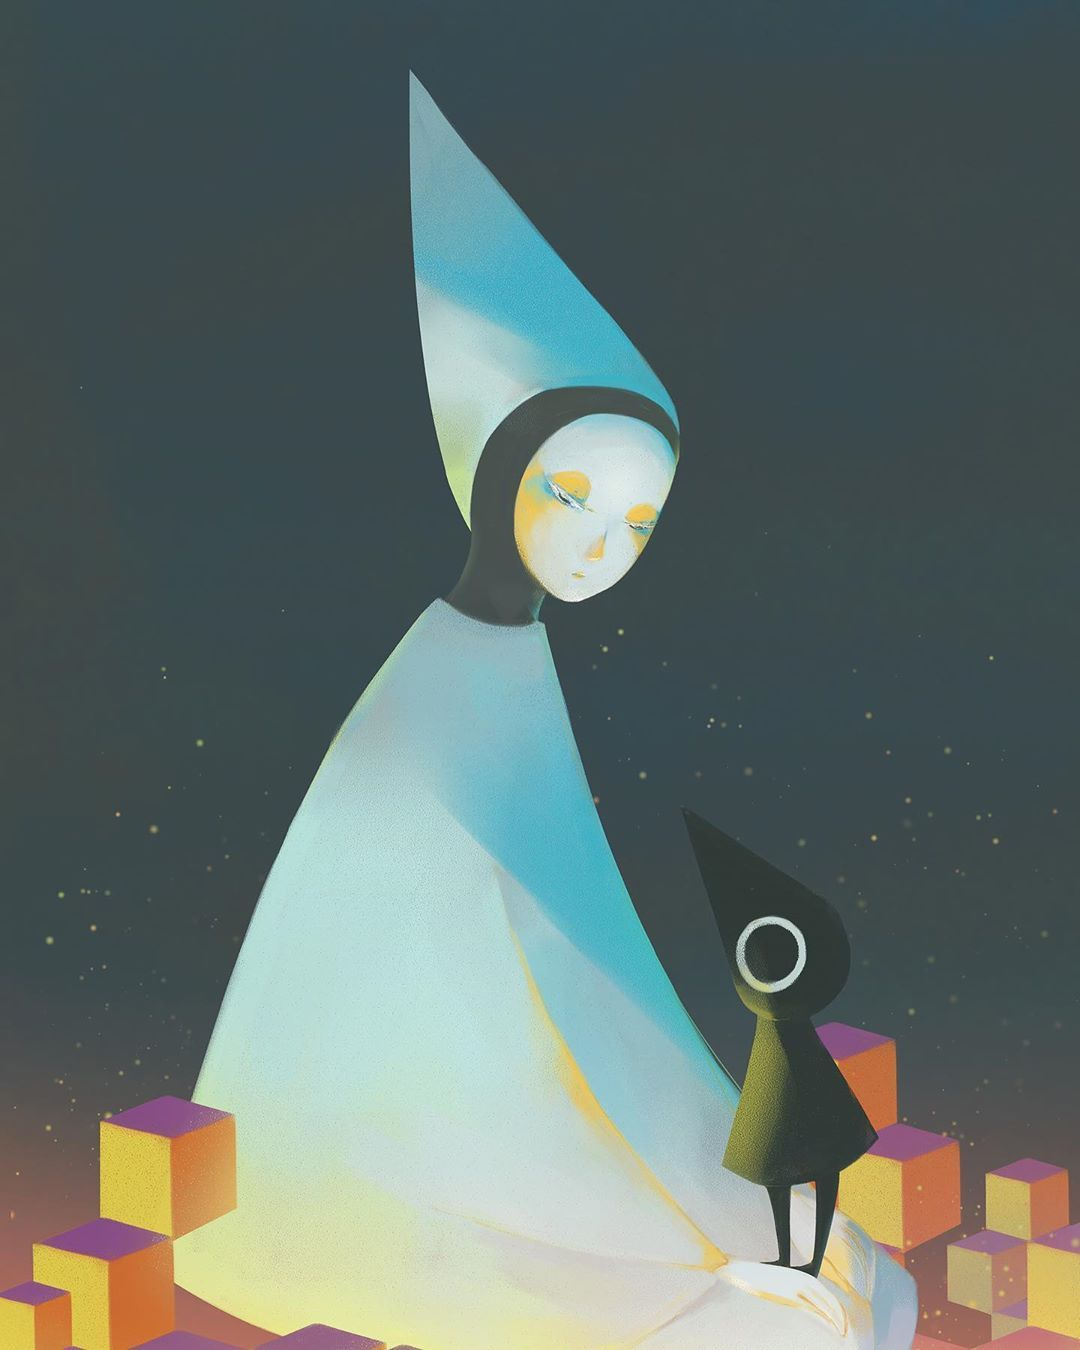 Fan Art Of Monument Valley One Of My Favorite Game